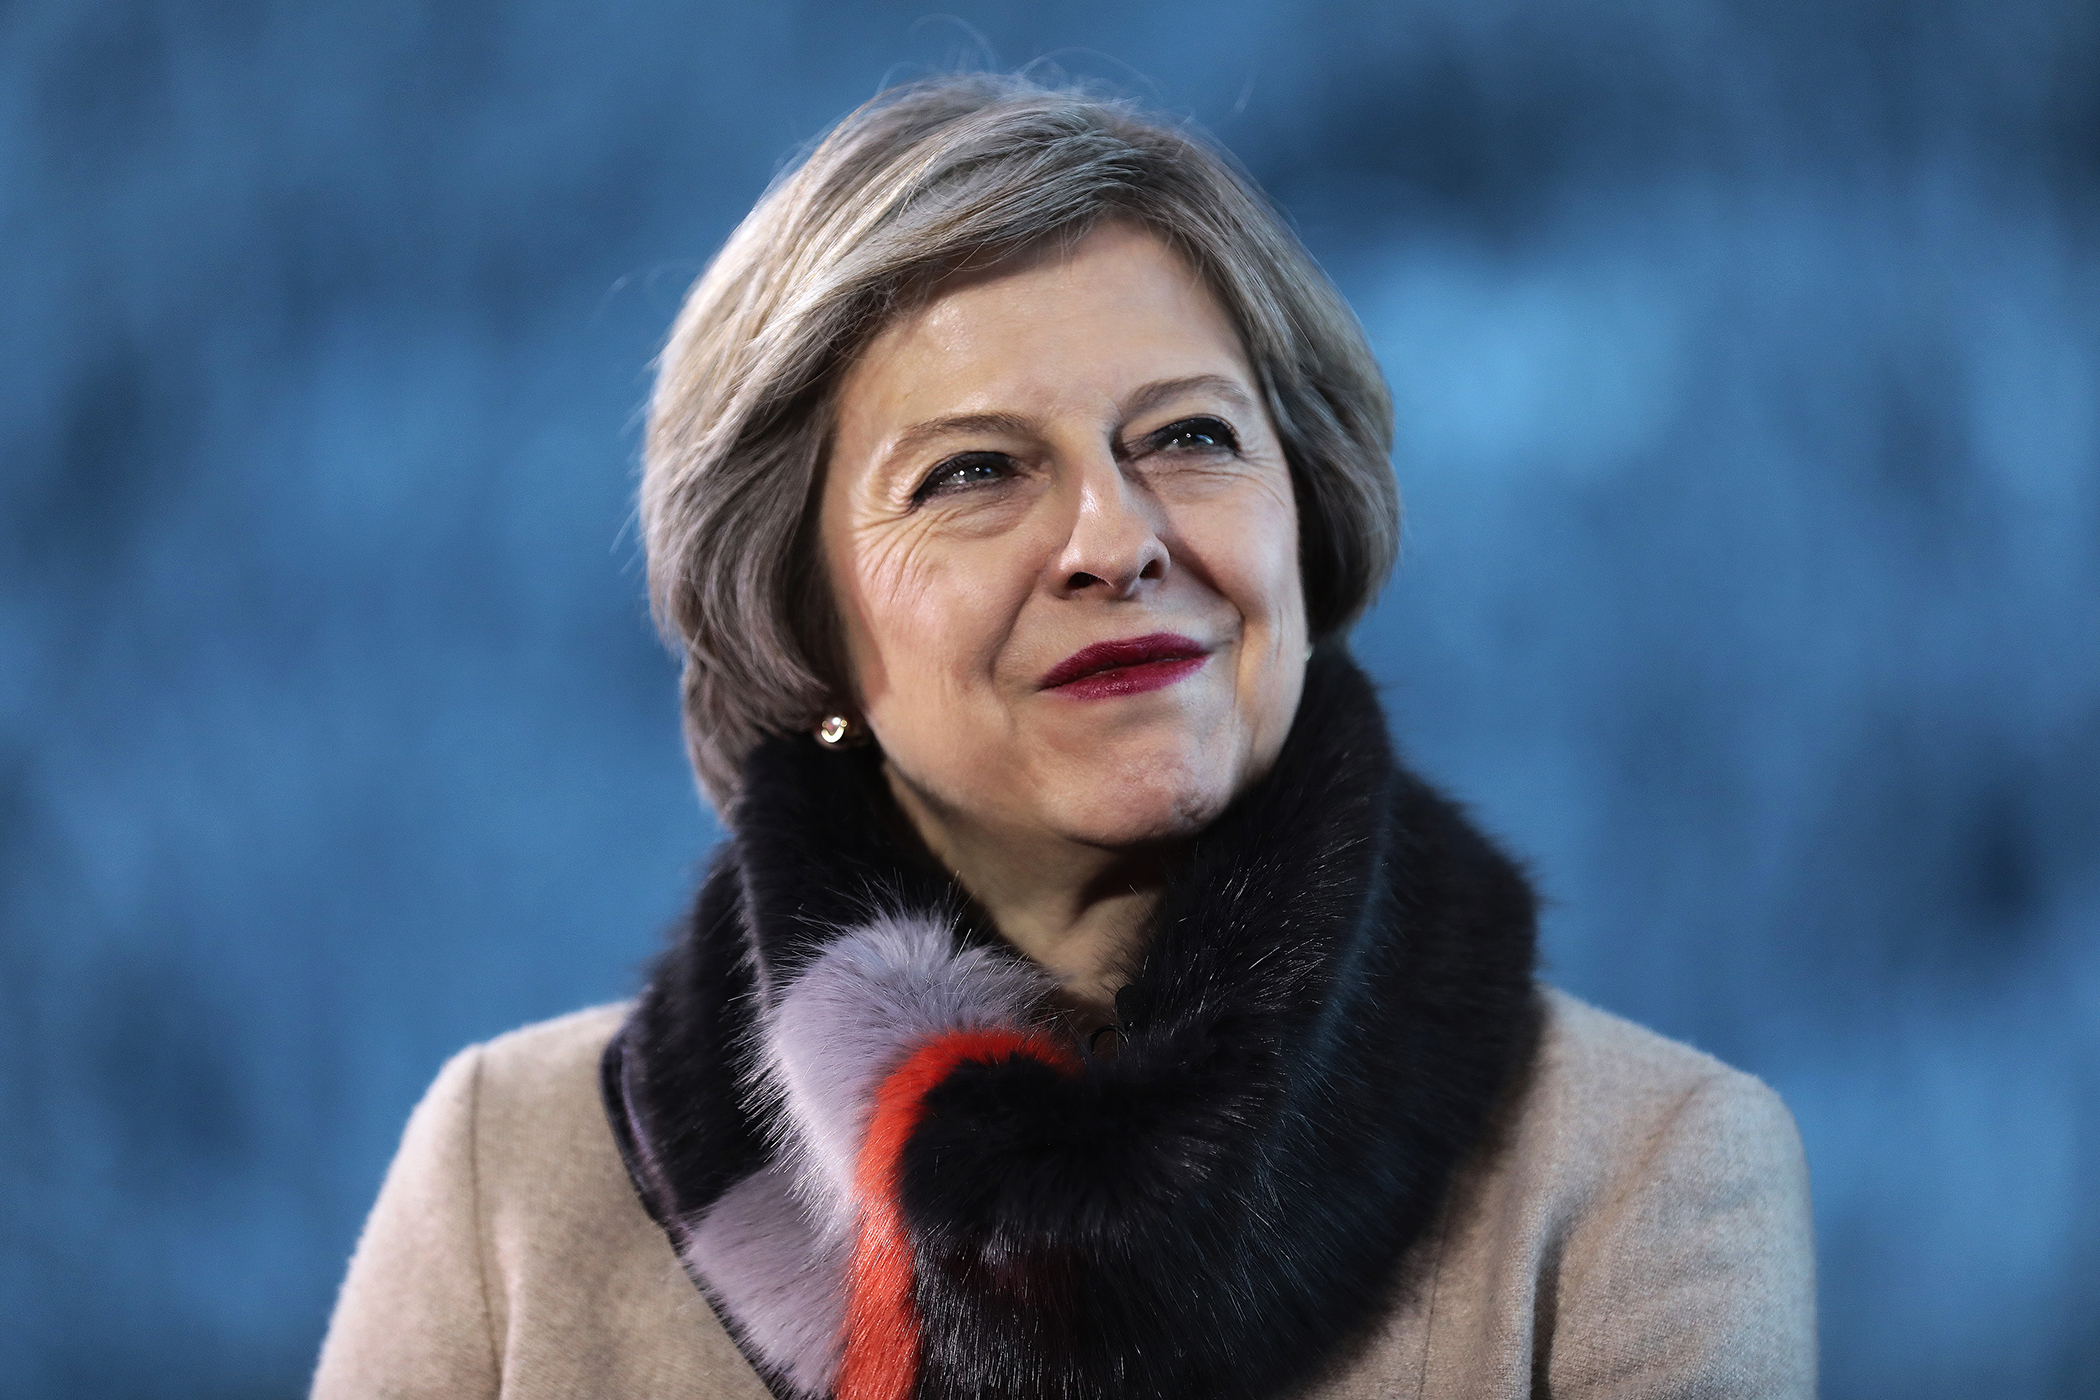 Theresa May at the World Economic Forum in Davos, Switzerland, on Jan. 19, 2017.